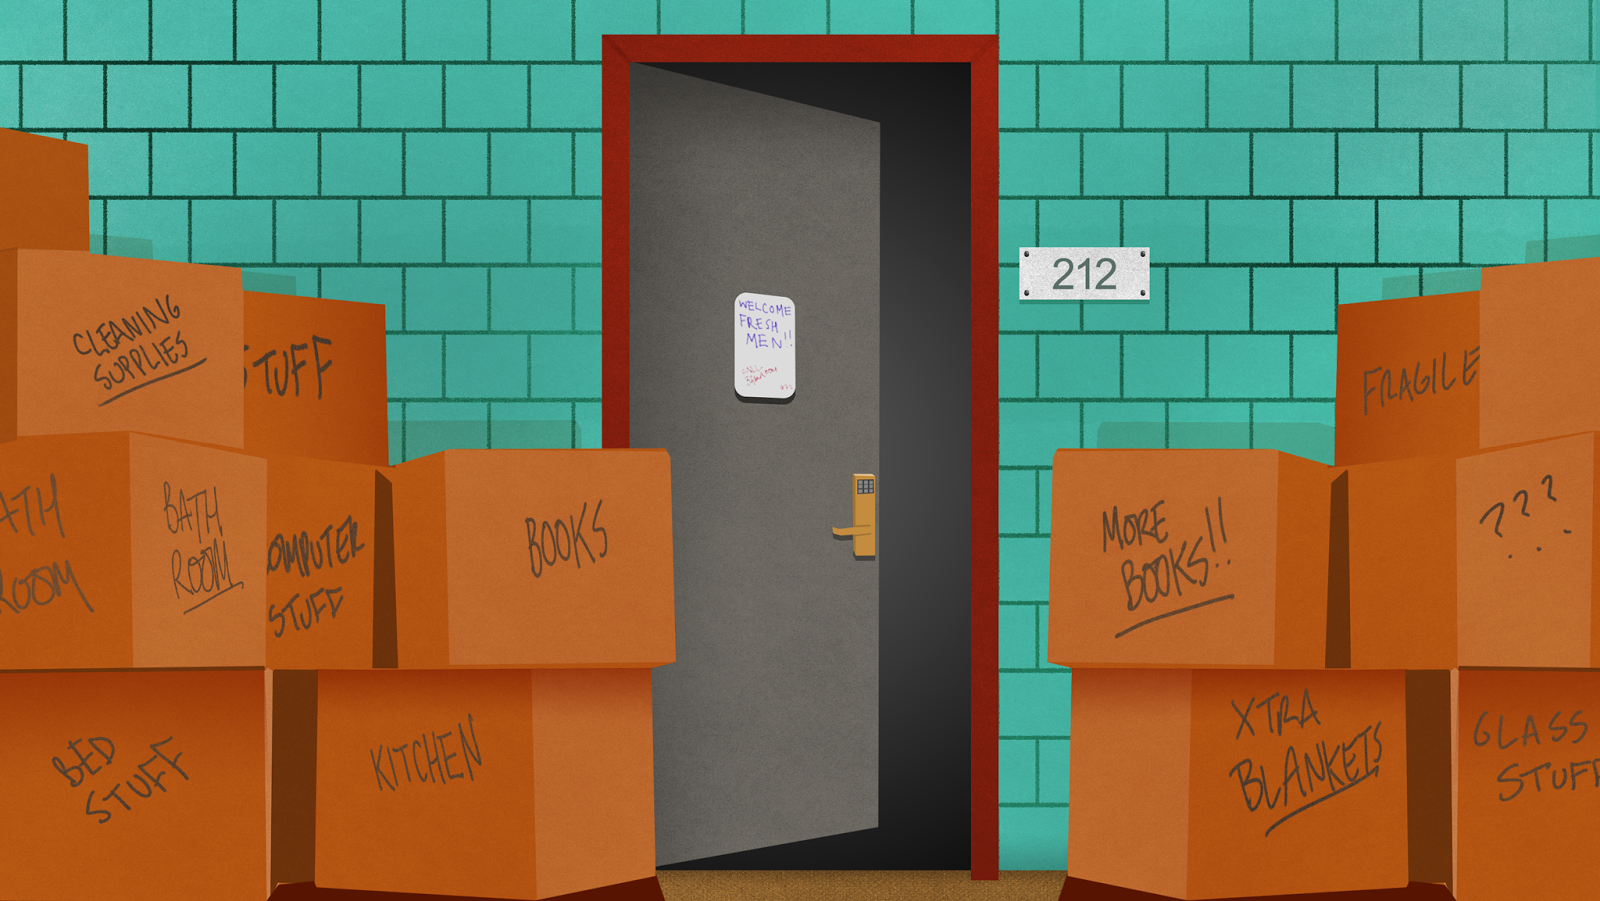 How To Make The Most Of Your Student Housing's Tiny Space